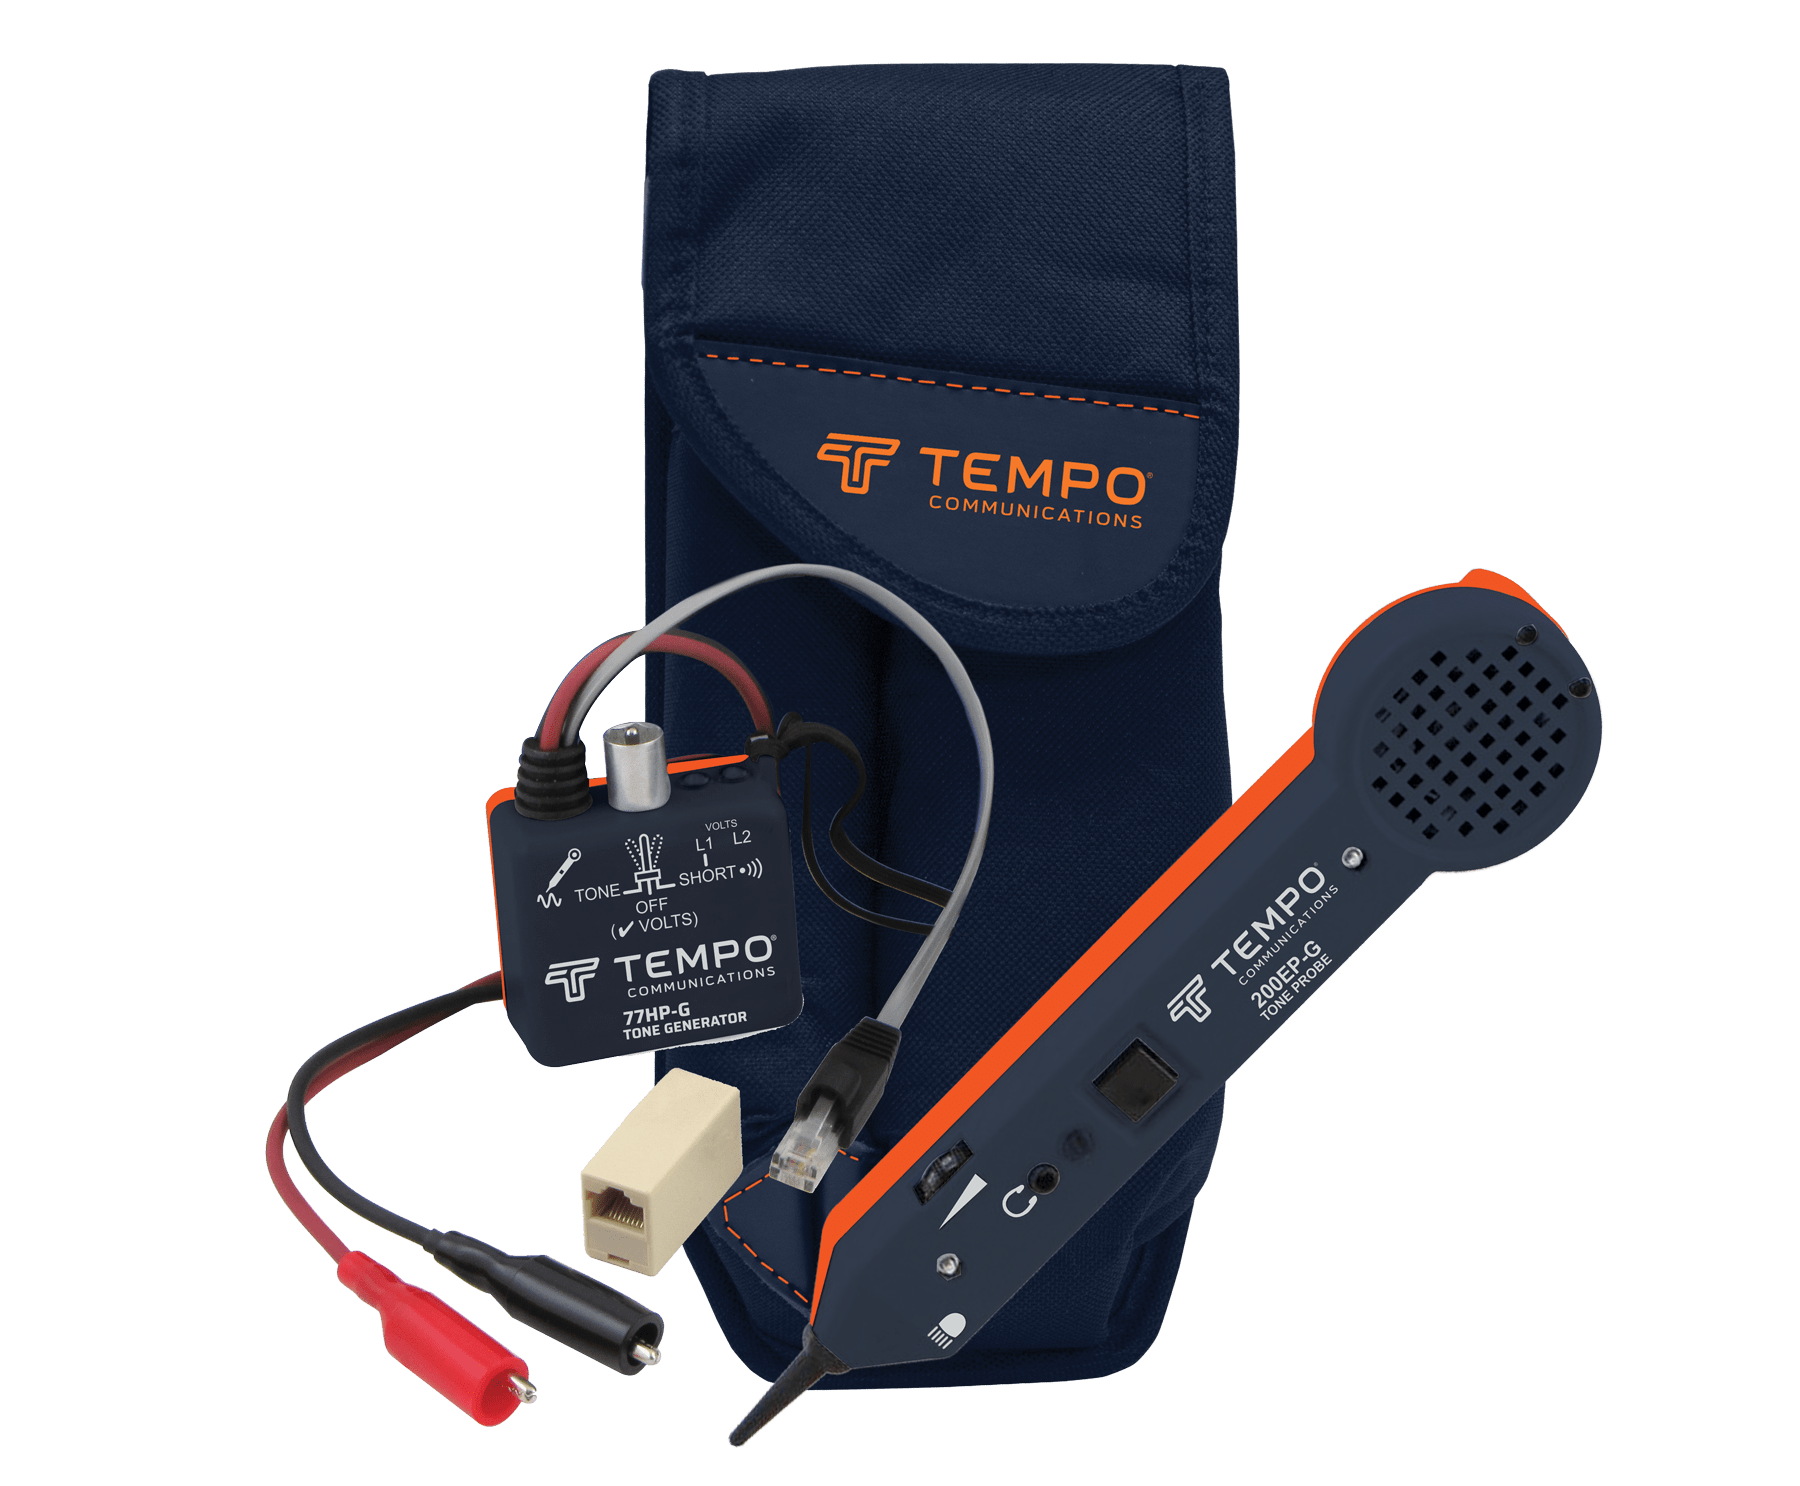 Quickly identify your wire with Tempo's 701K tone and trace kit